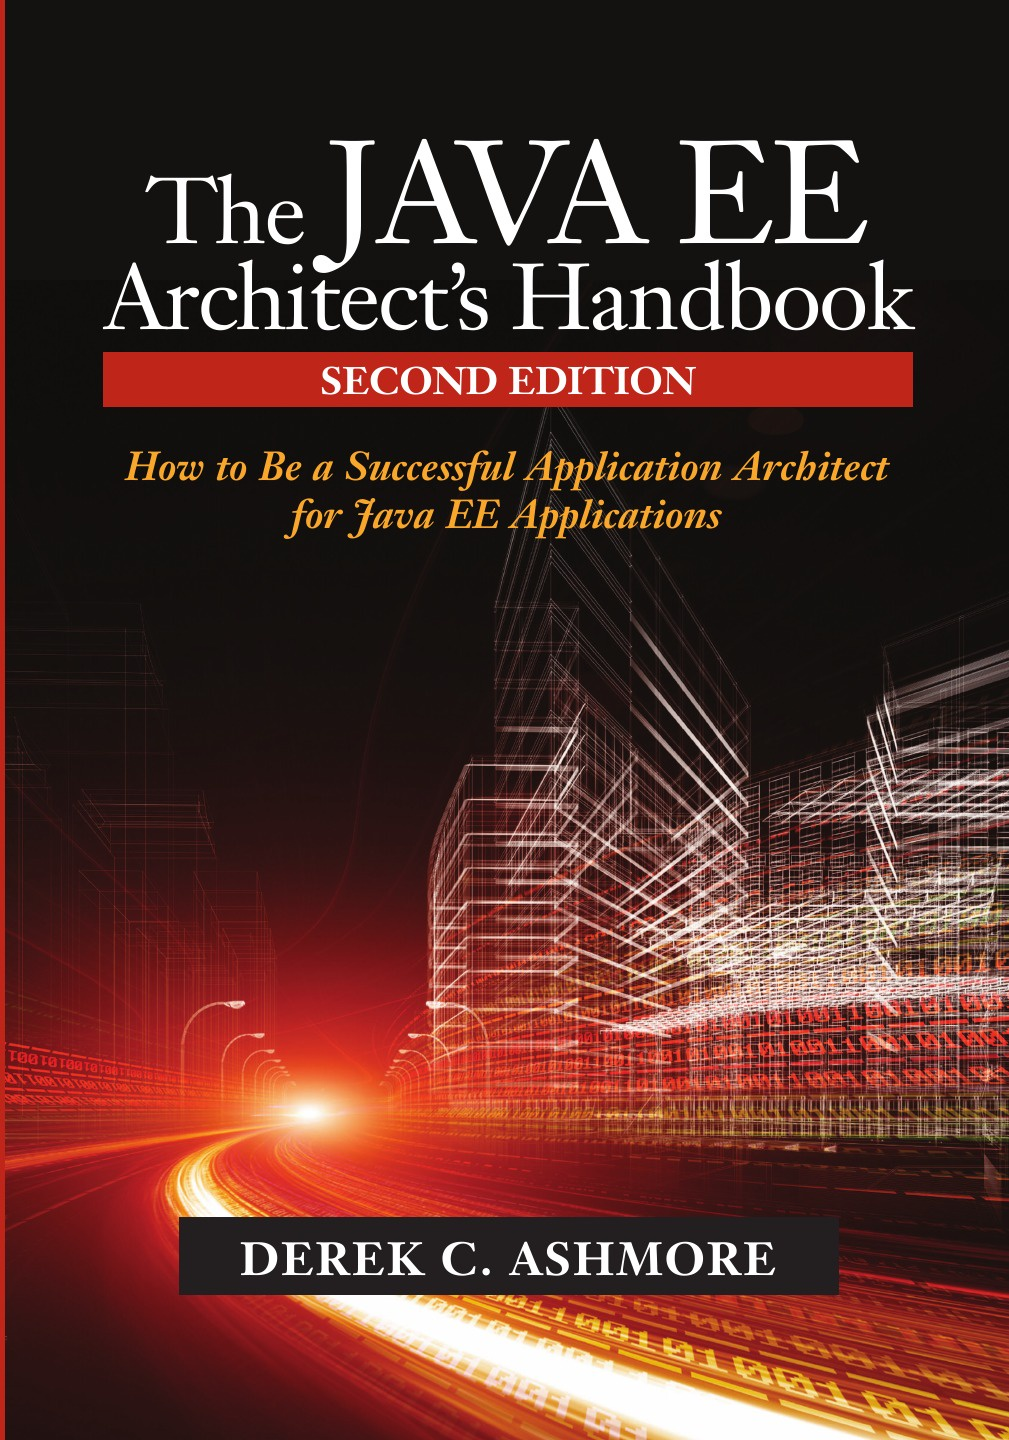 Derek C. Ashmore The Java Ee Architect's Handbook. How to Be a Successful Application Architect for Java Ee Applications java for novice programmers